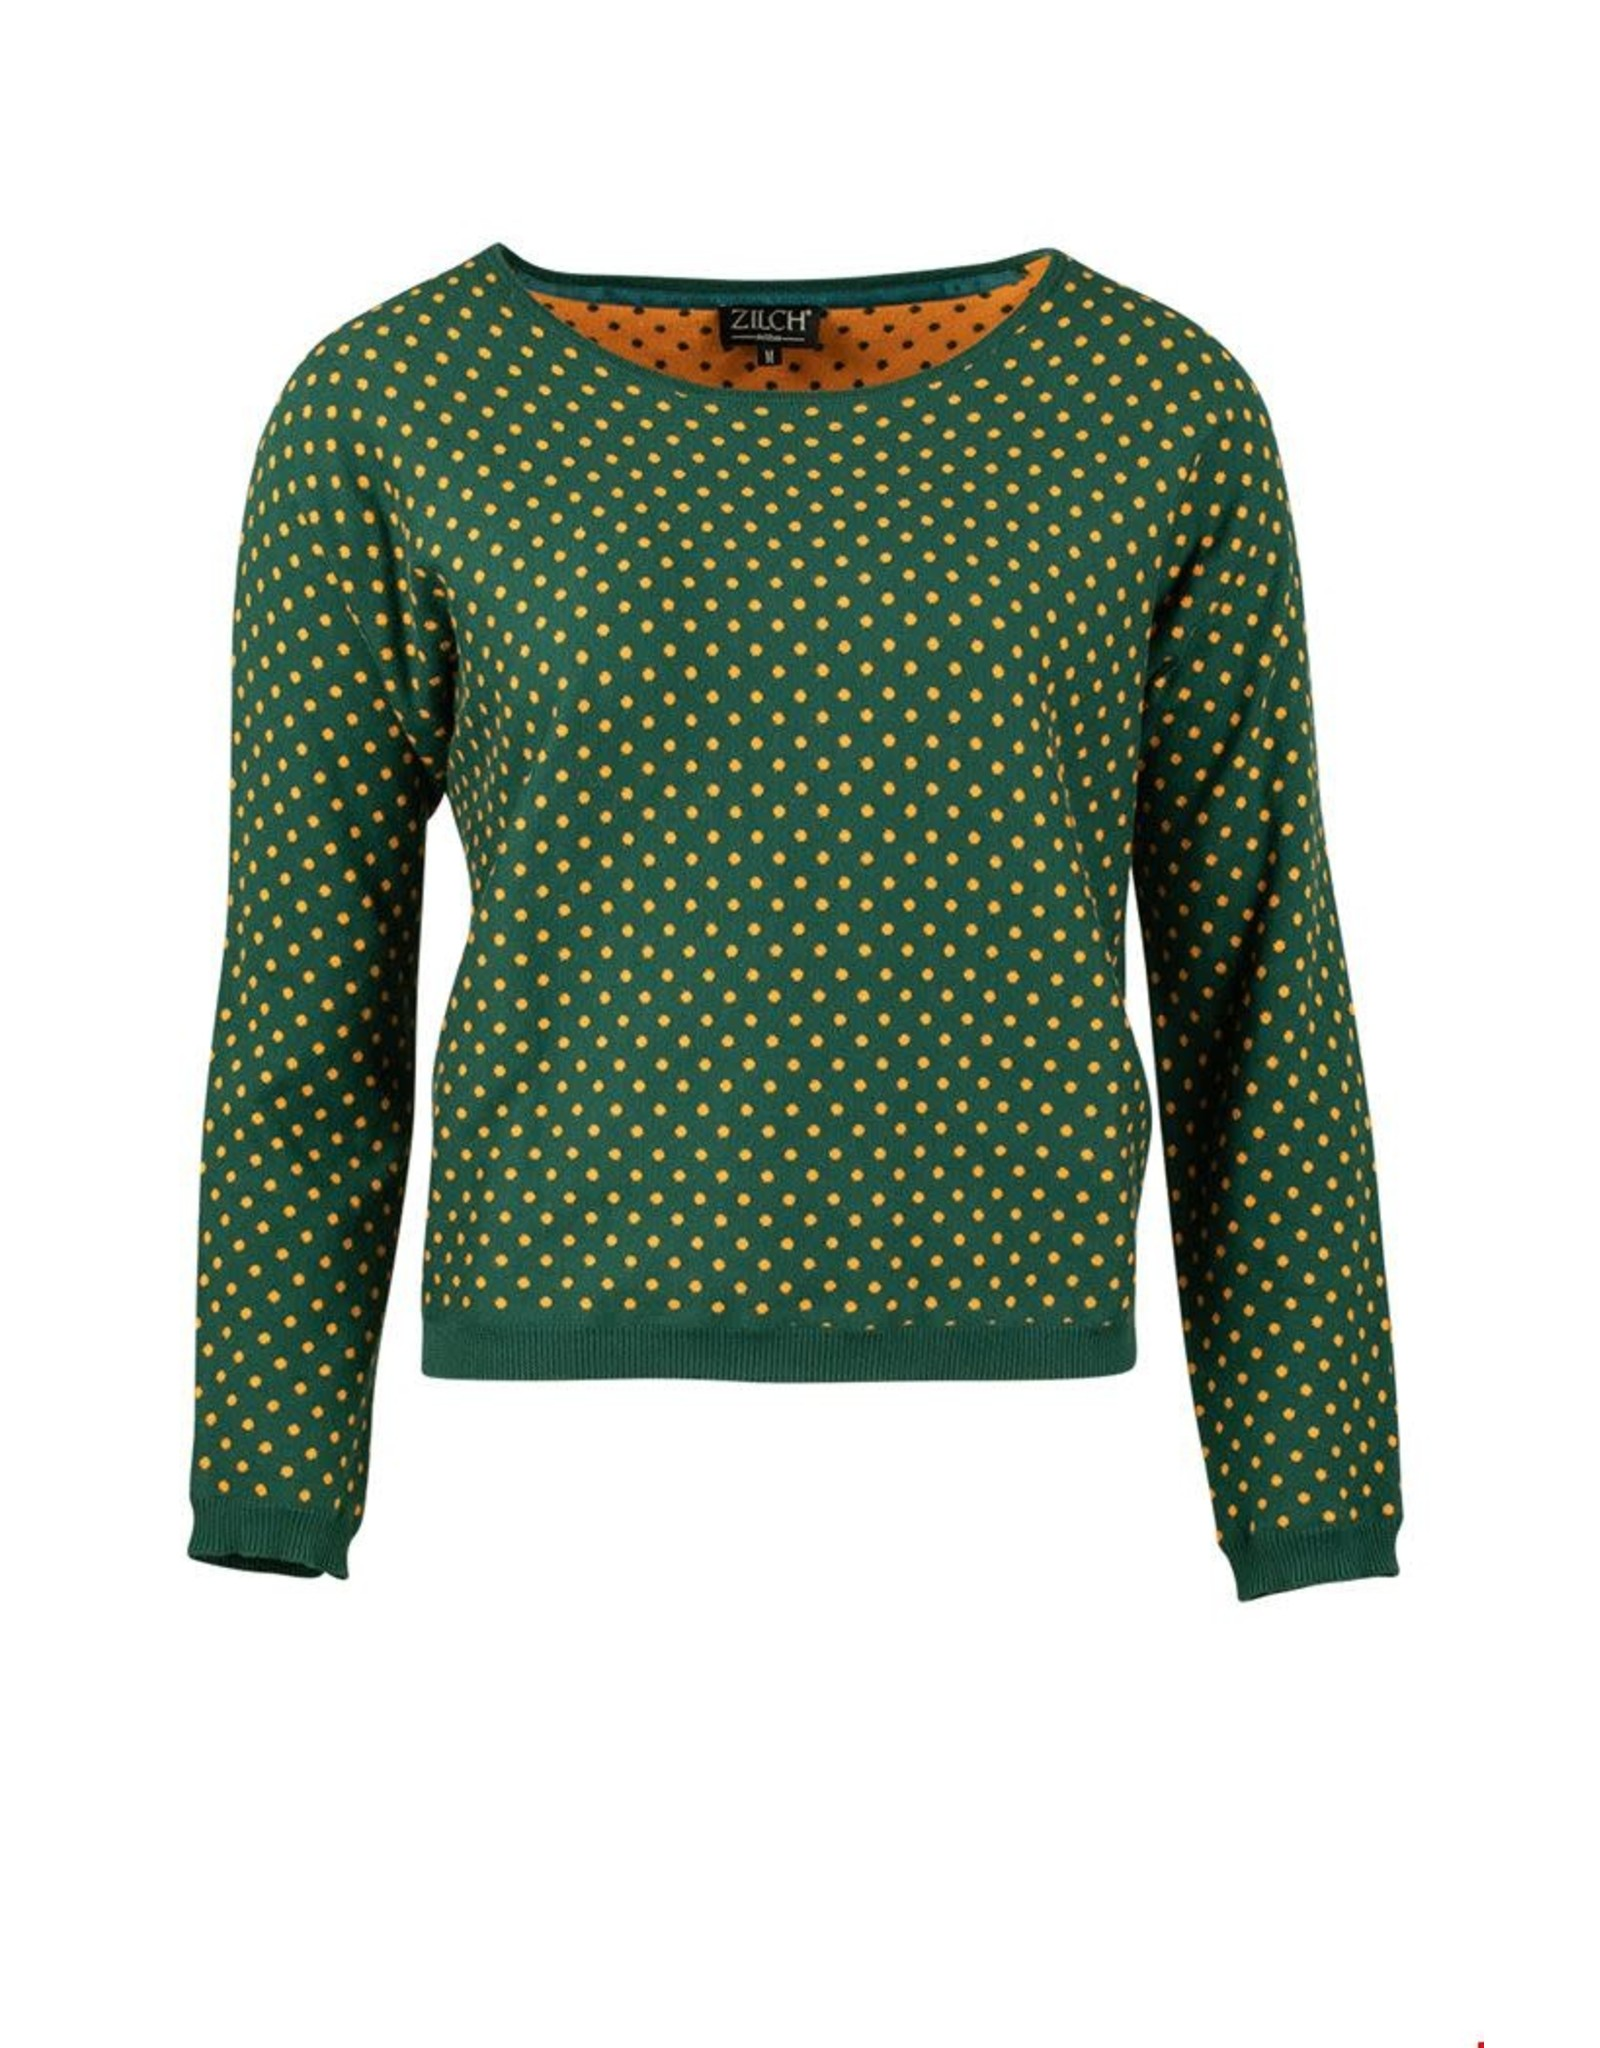 zilch Zilch sweater 02COTJ30.050 Dots forest 807